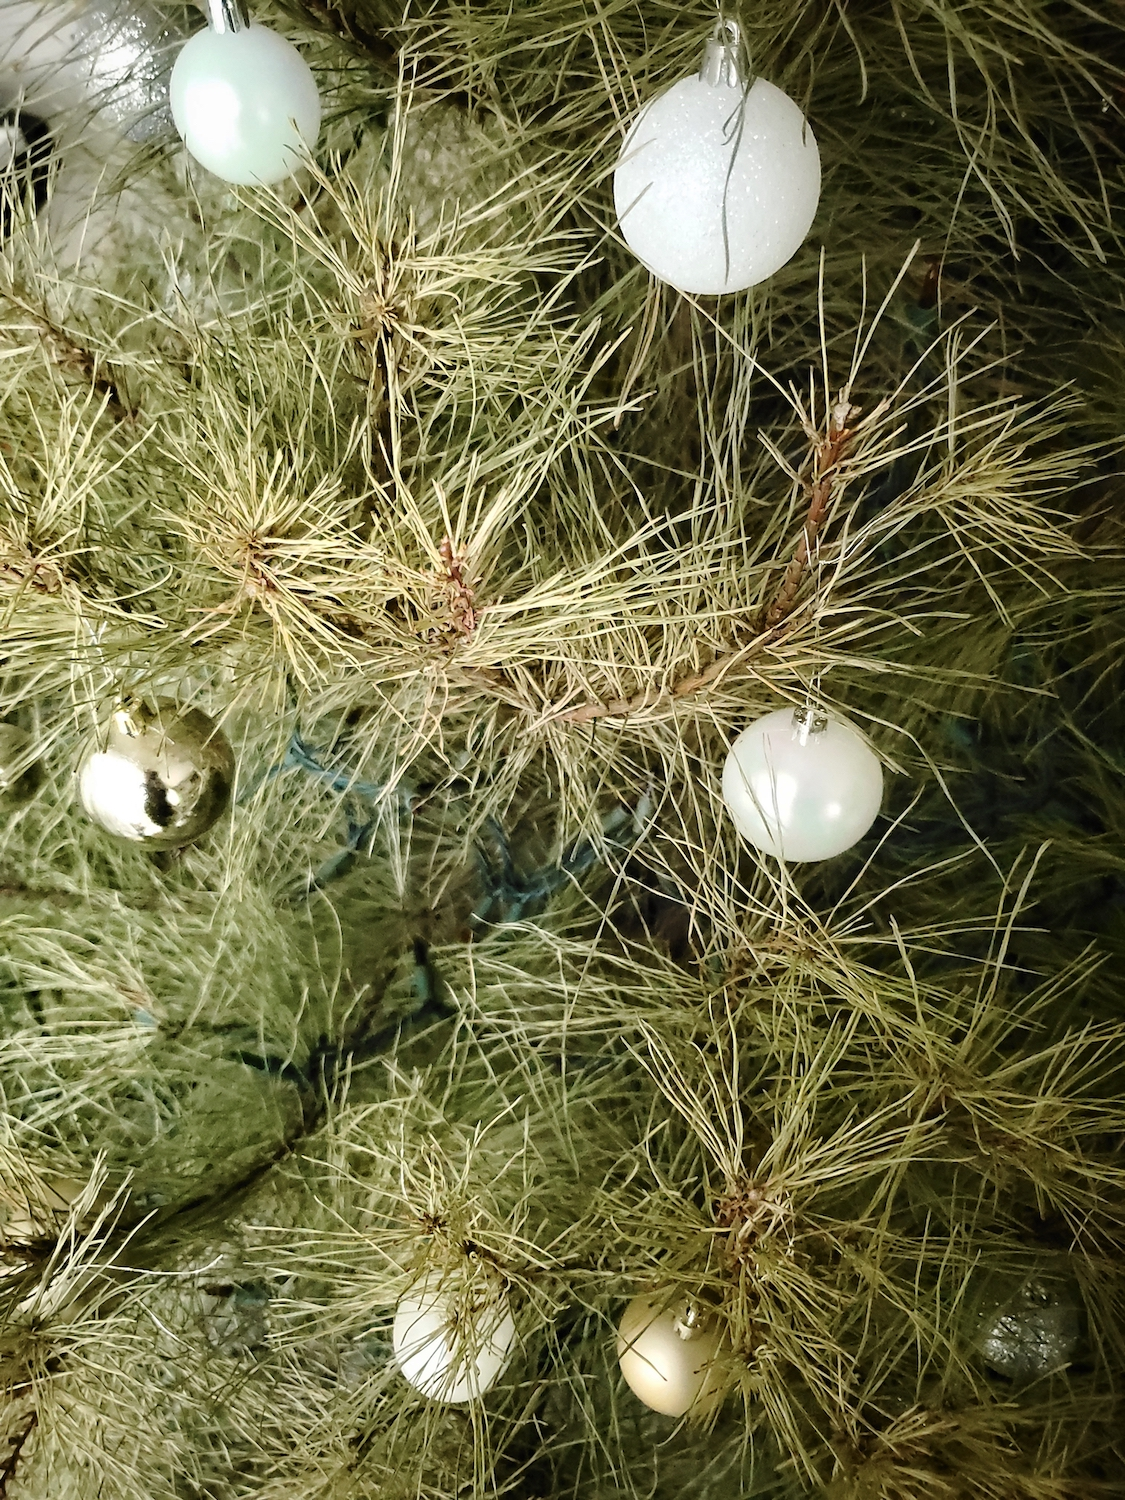 A Christmas tree alive until february